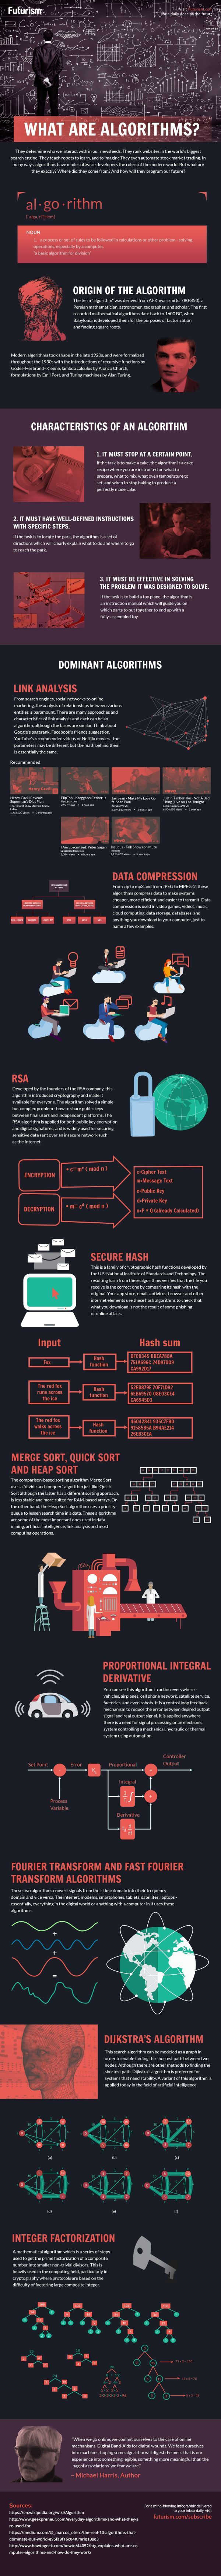 what are algorithms infographic